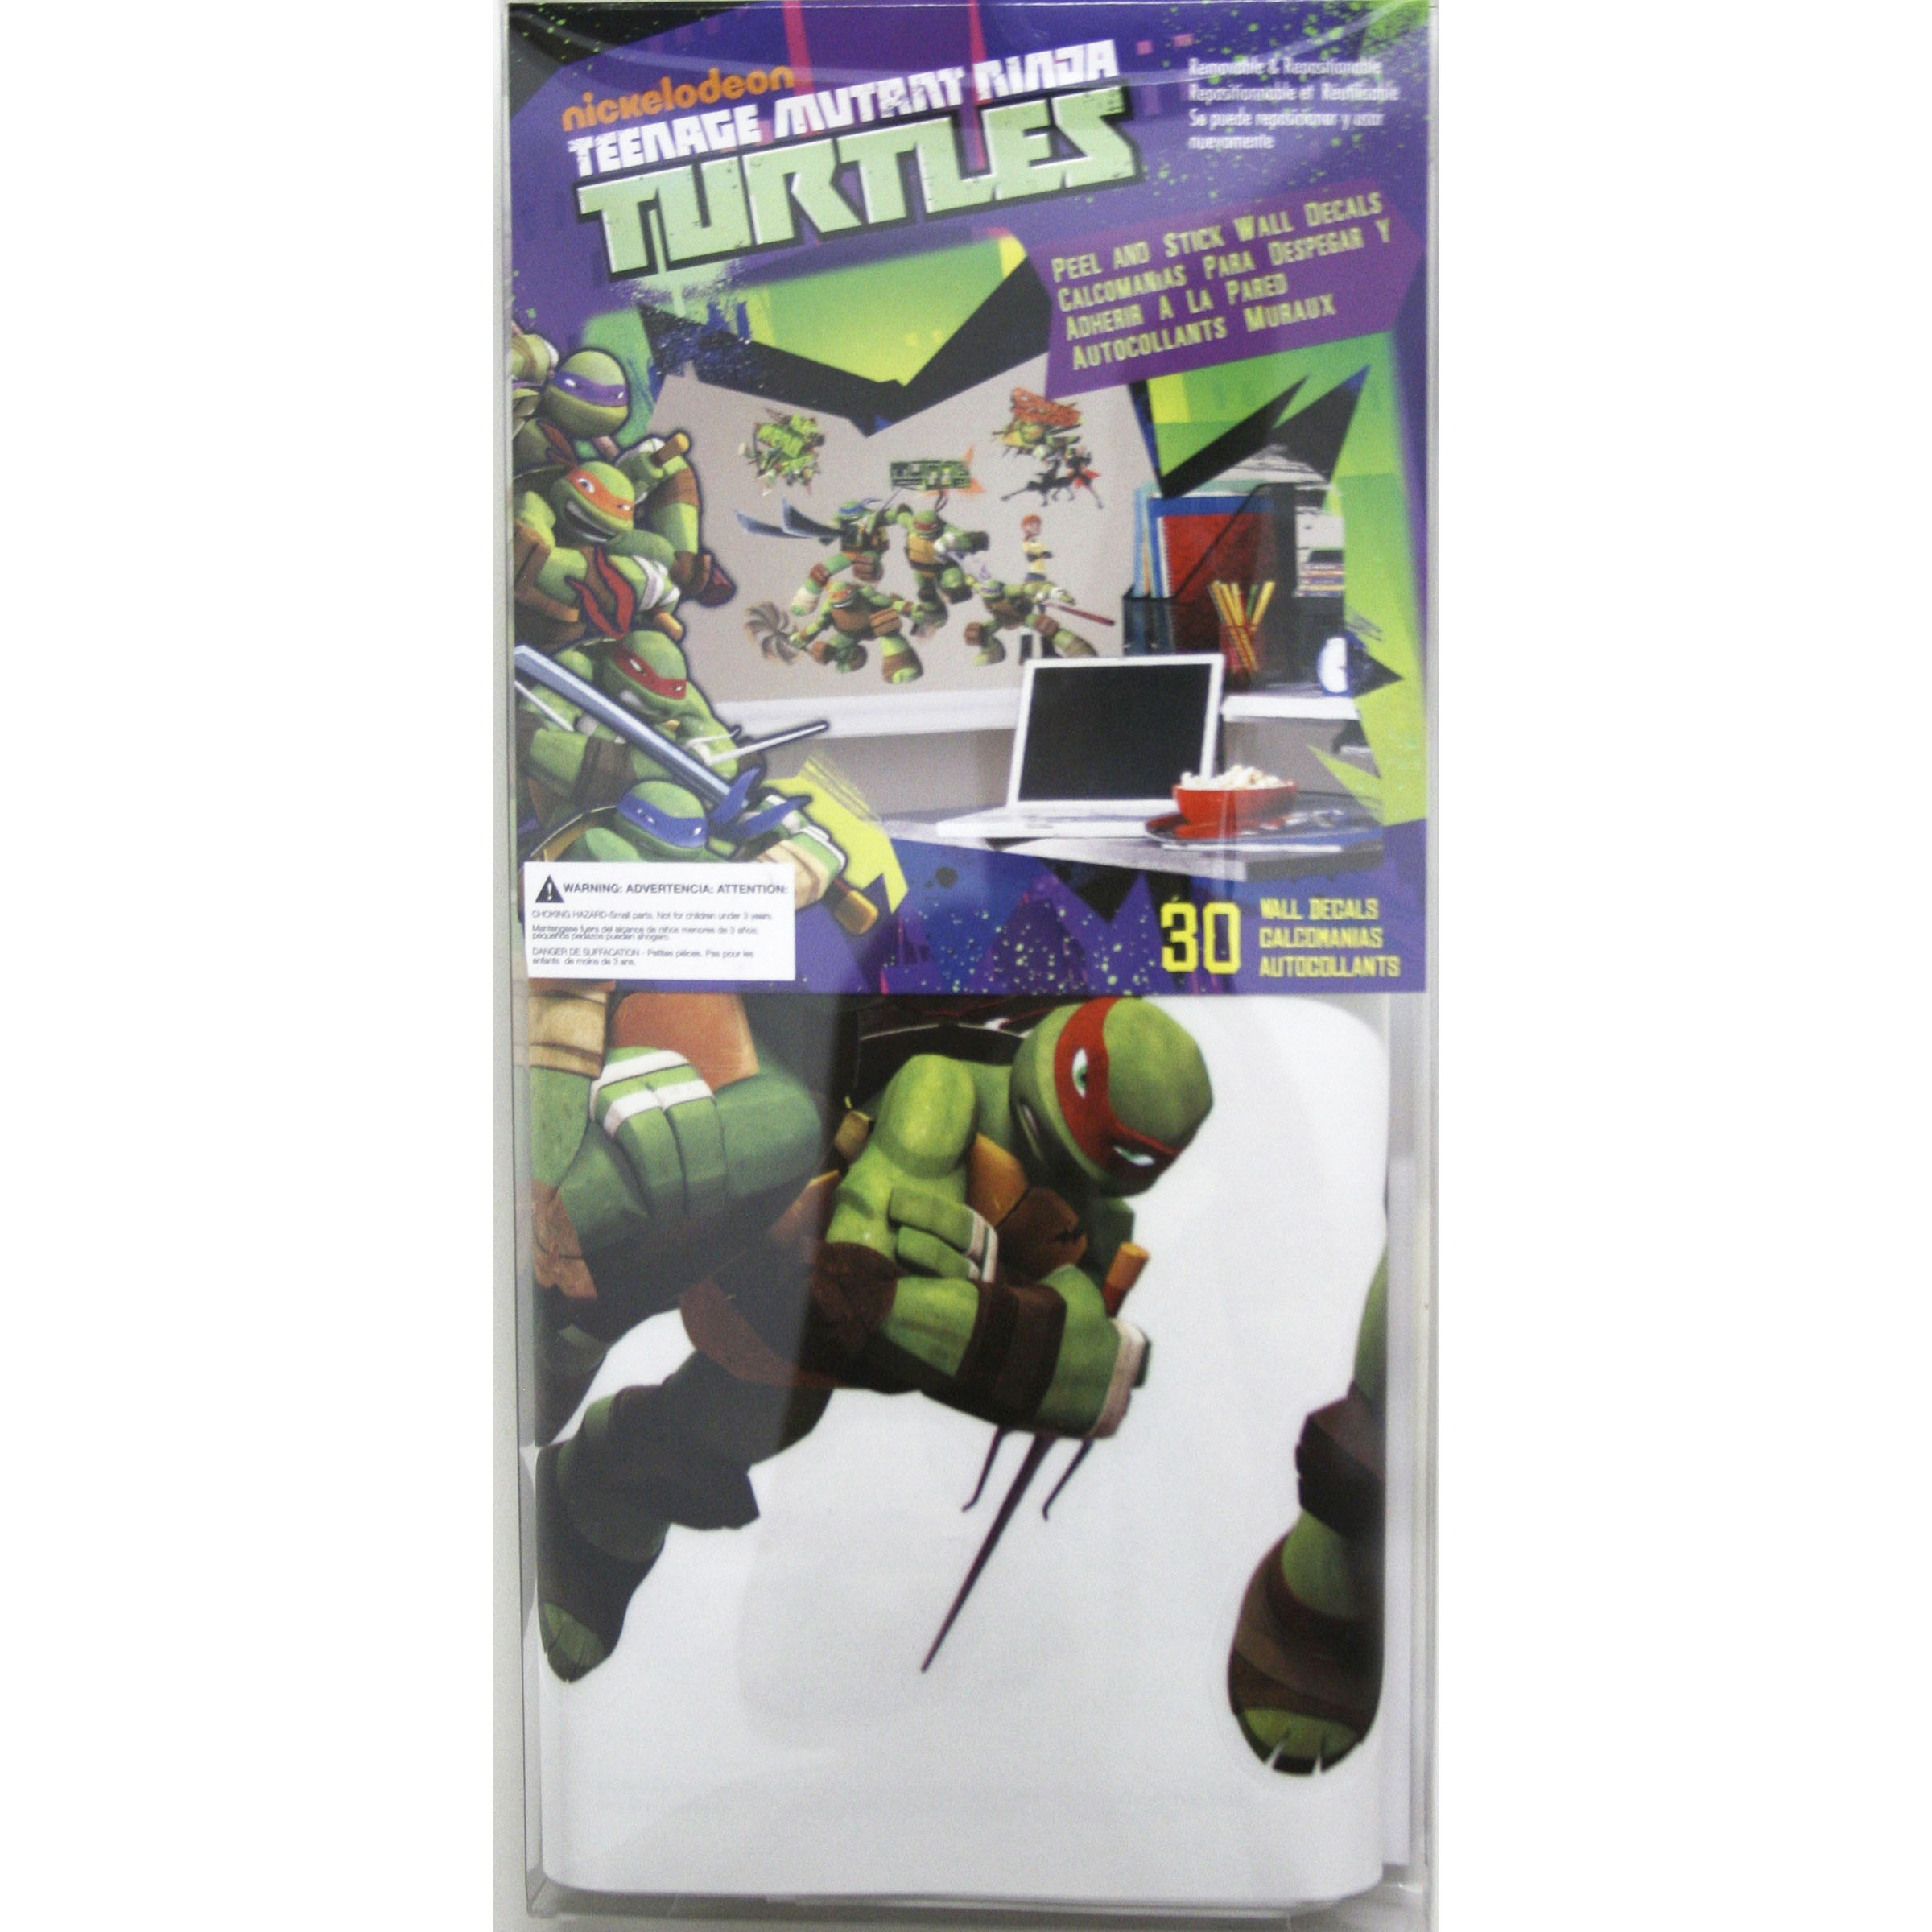 Teenage mutant ninja turtles wall decals joann teenage mutant ninja turtles peel and stick wall decals amipublicfo Image collections